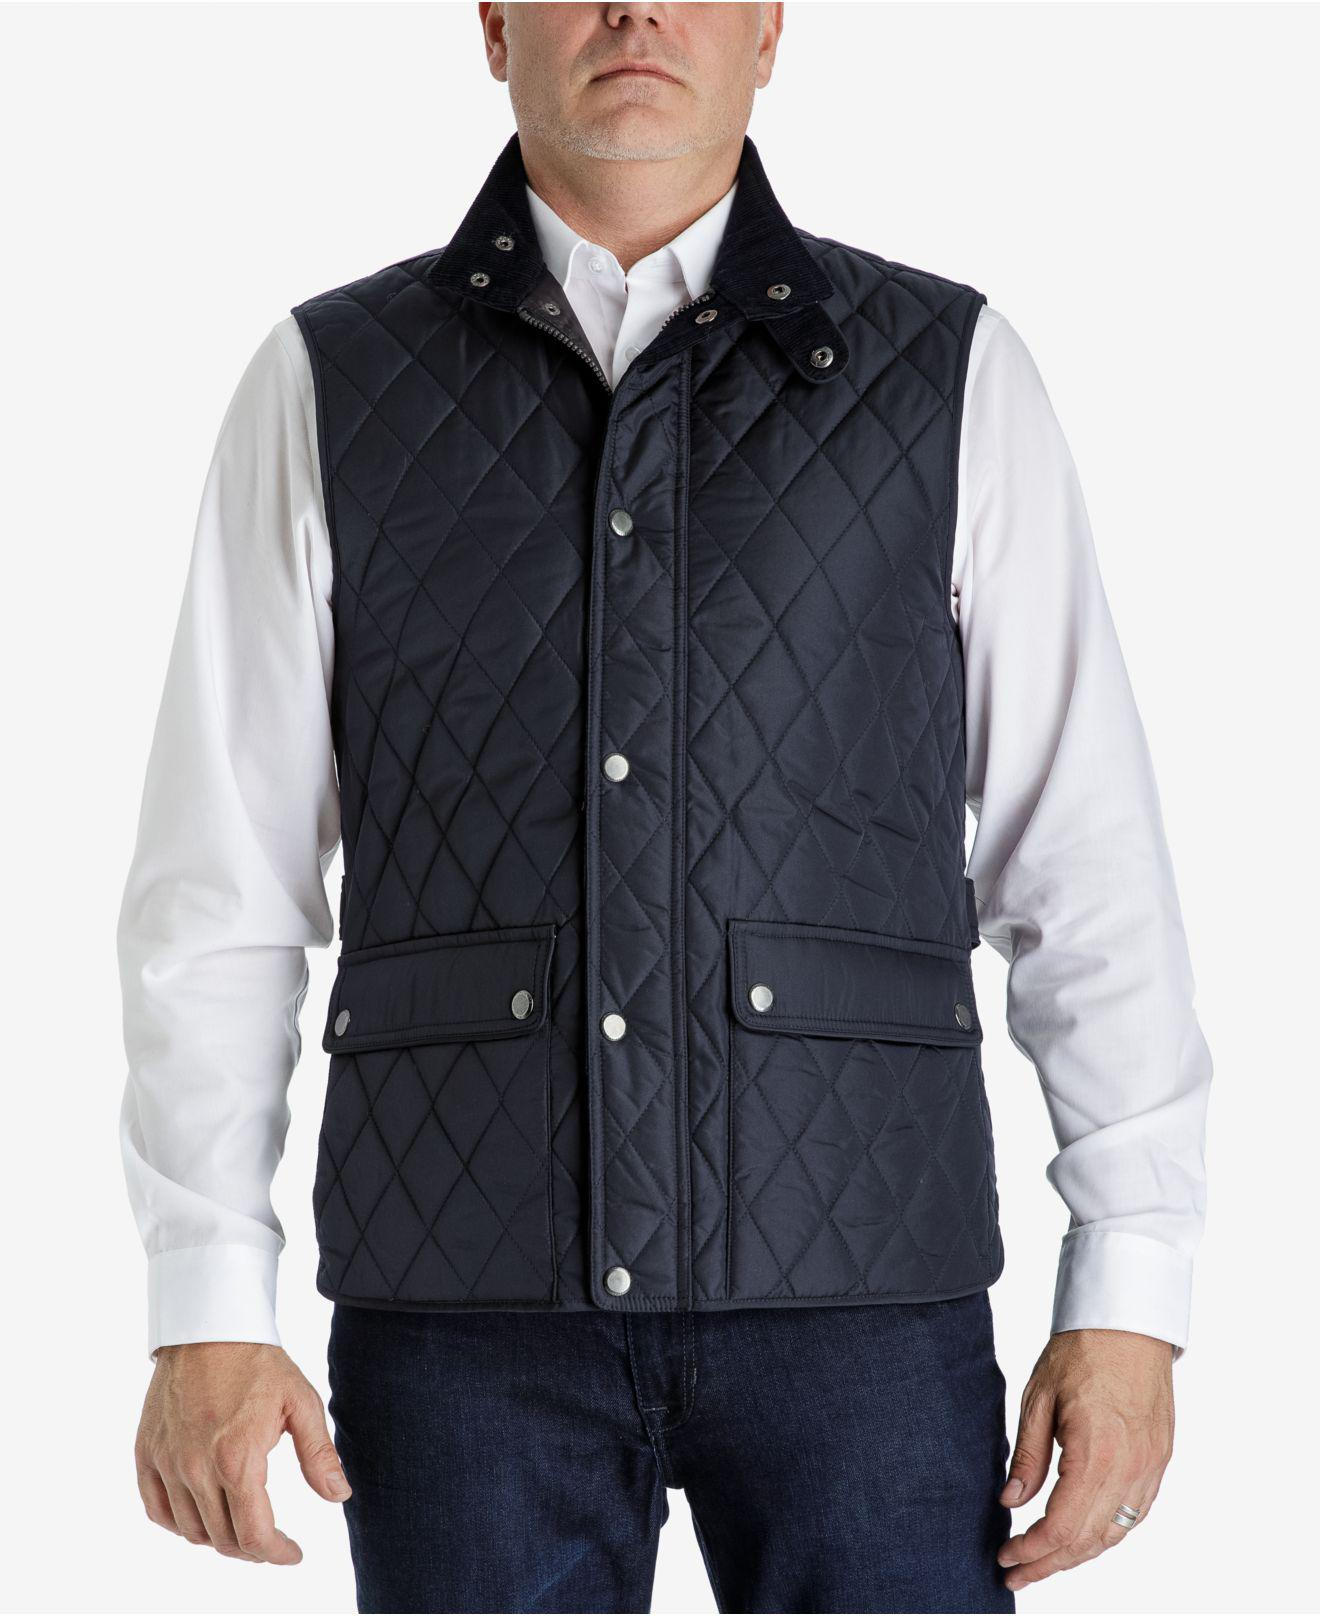 front quiltedvest cotton vest nature quilt view quilted baby navy